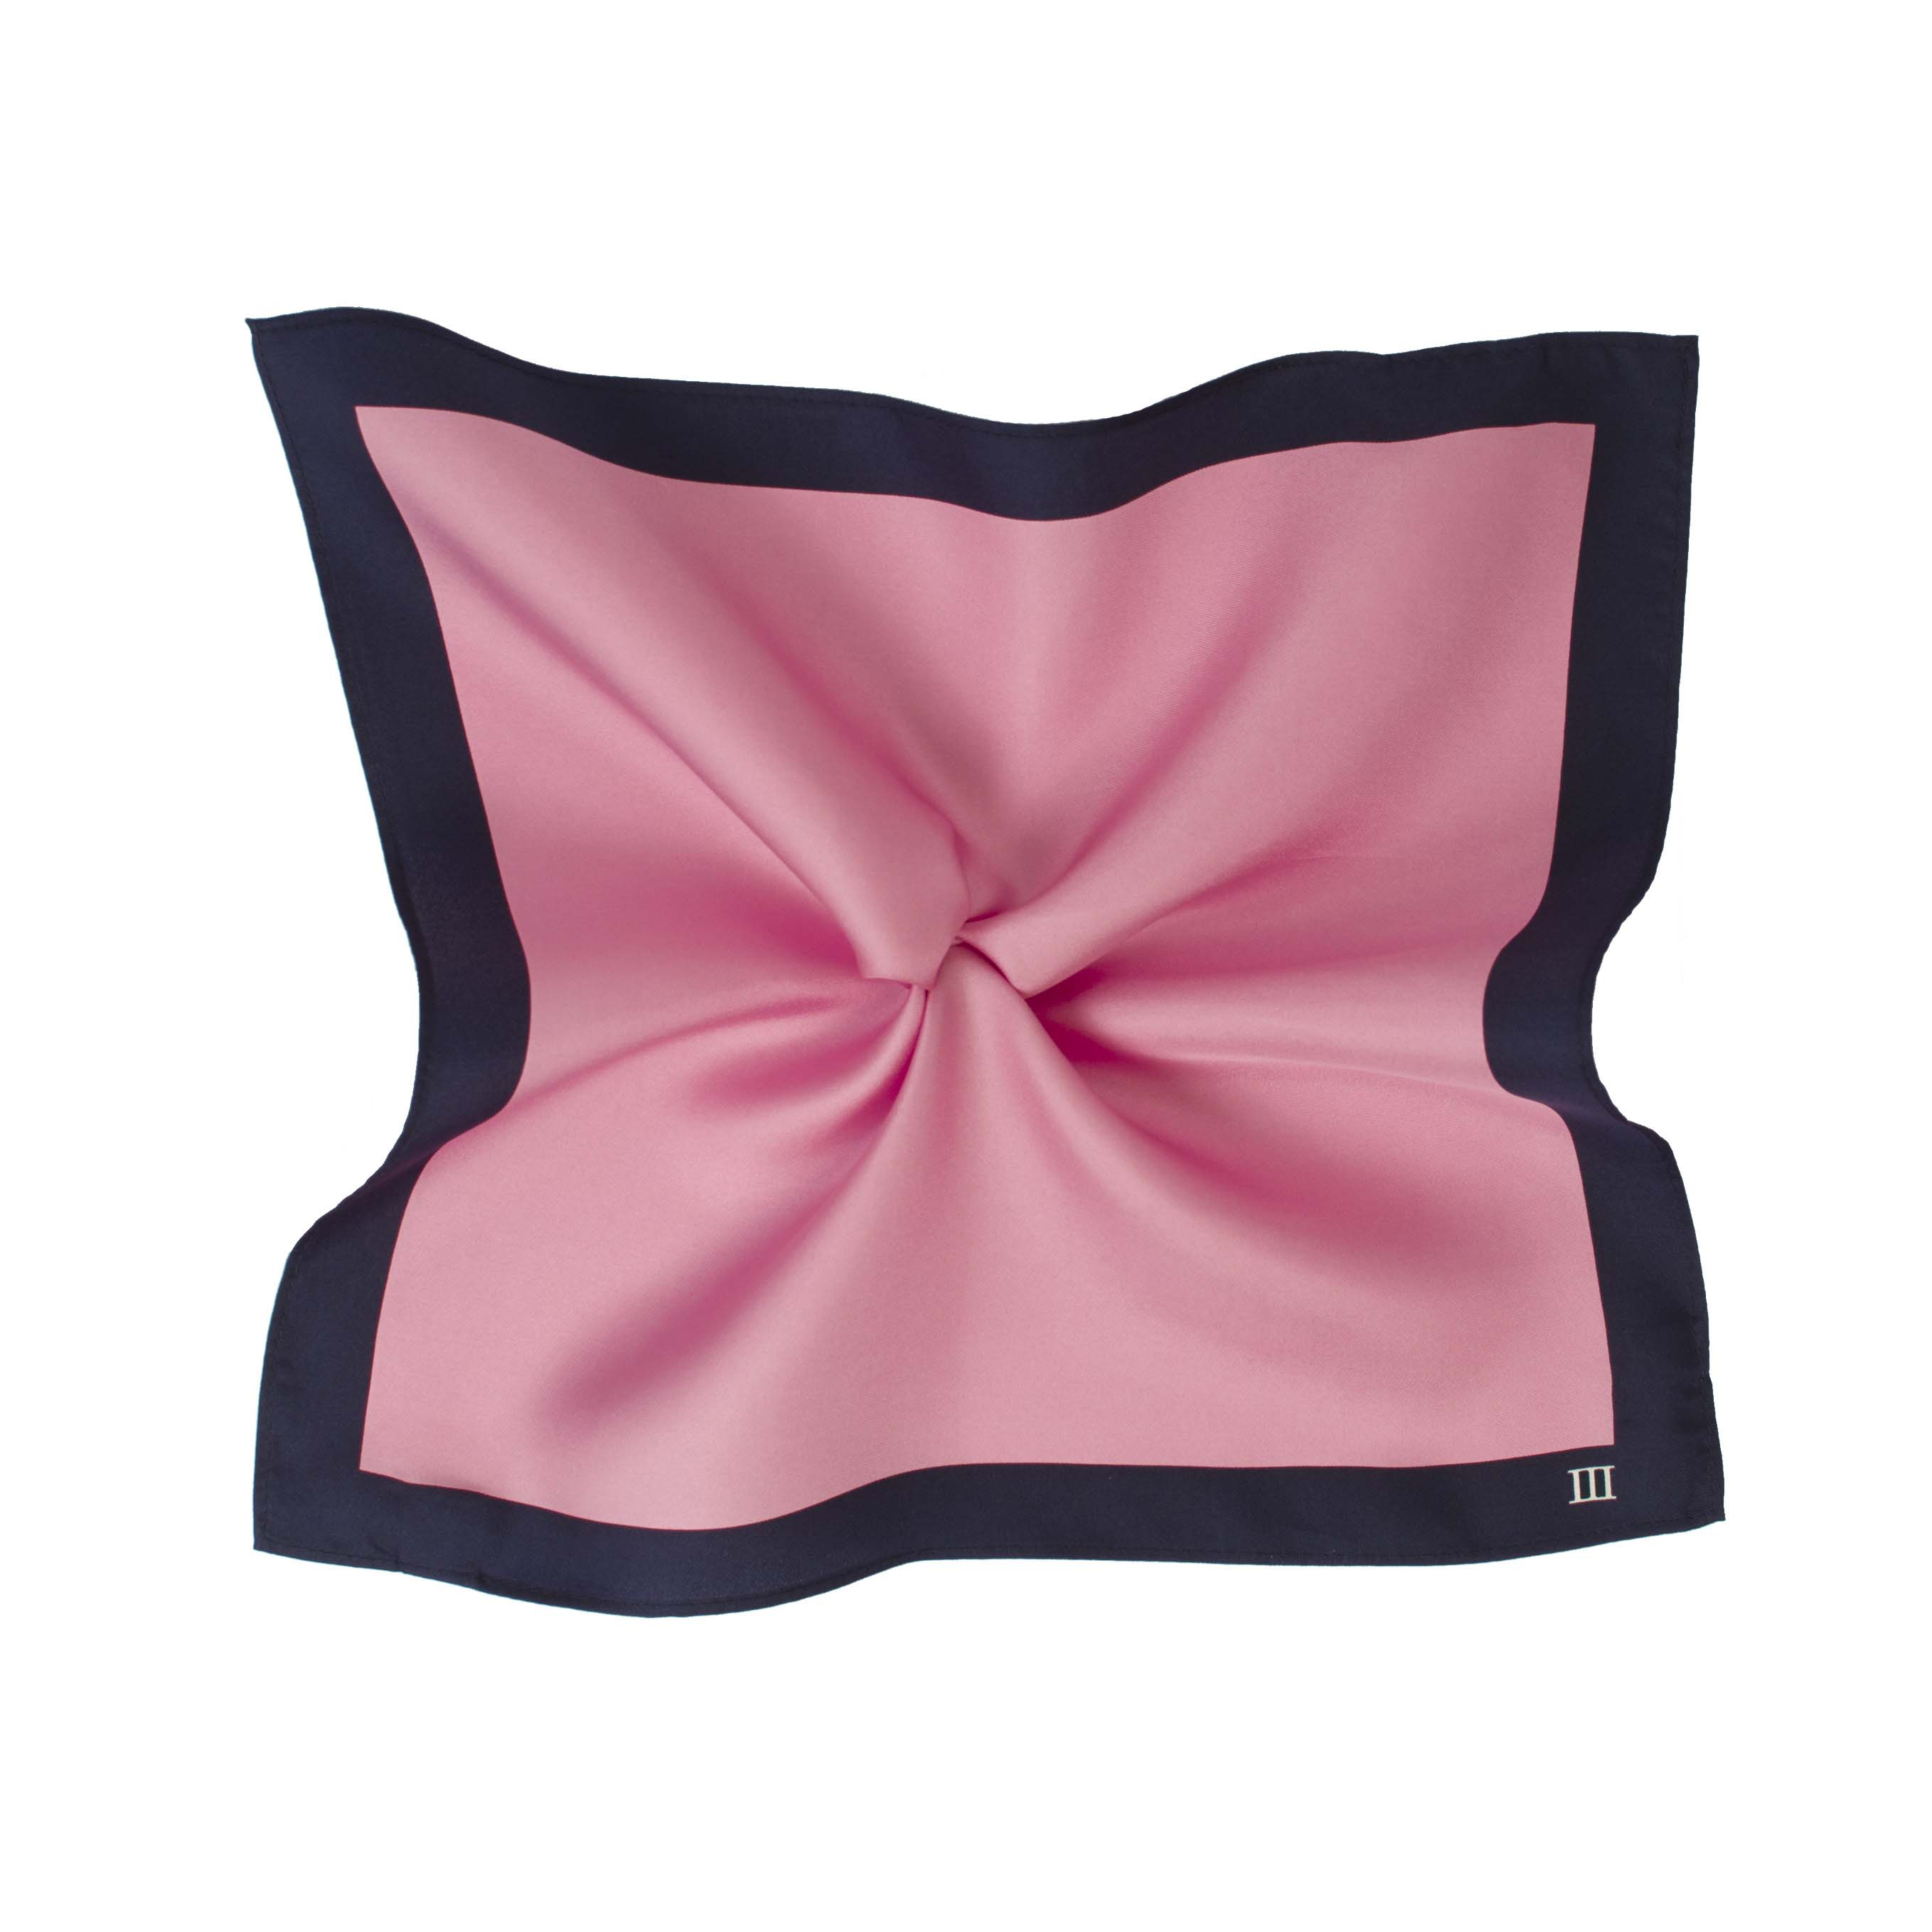 Pocket sqaure pink with navy border made of silk